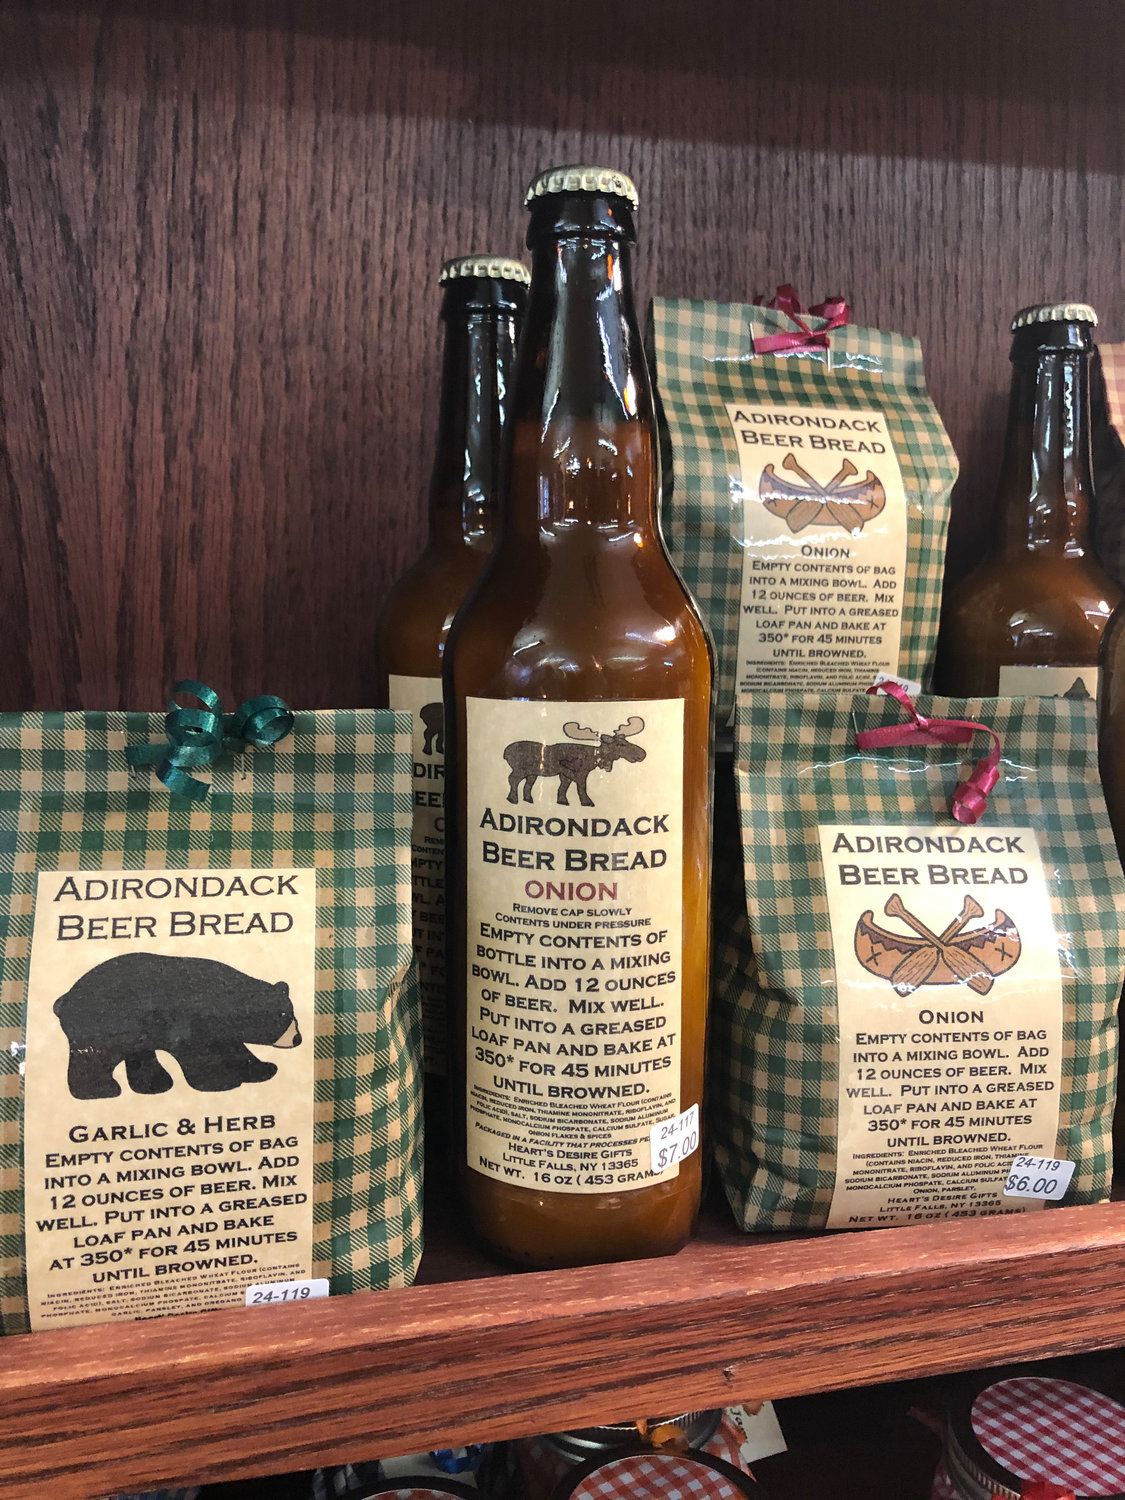 FUN STUFF — Artist Peggy Hadcock, of Little Falls, makes bread mix that comes in beer bottles. You can find her work featured at the Artisans' Corner in Clinton.